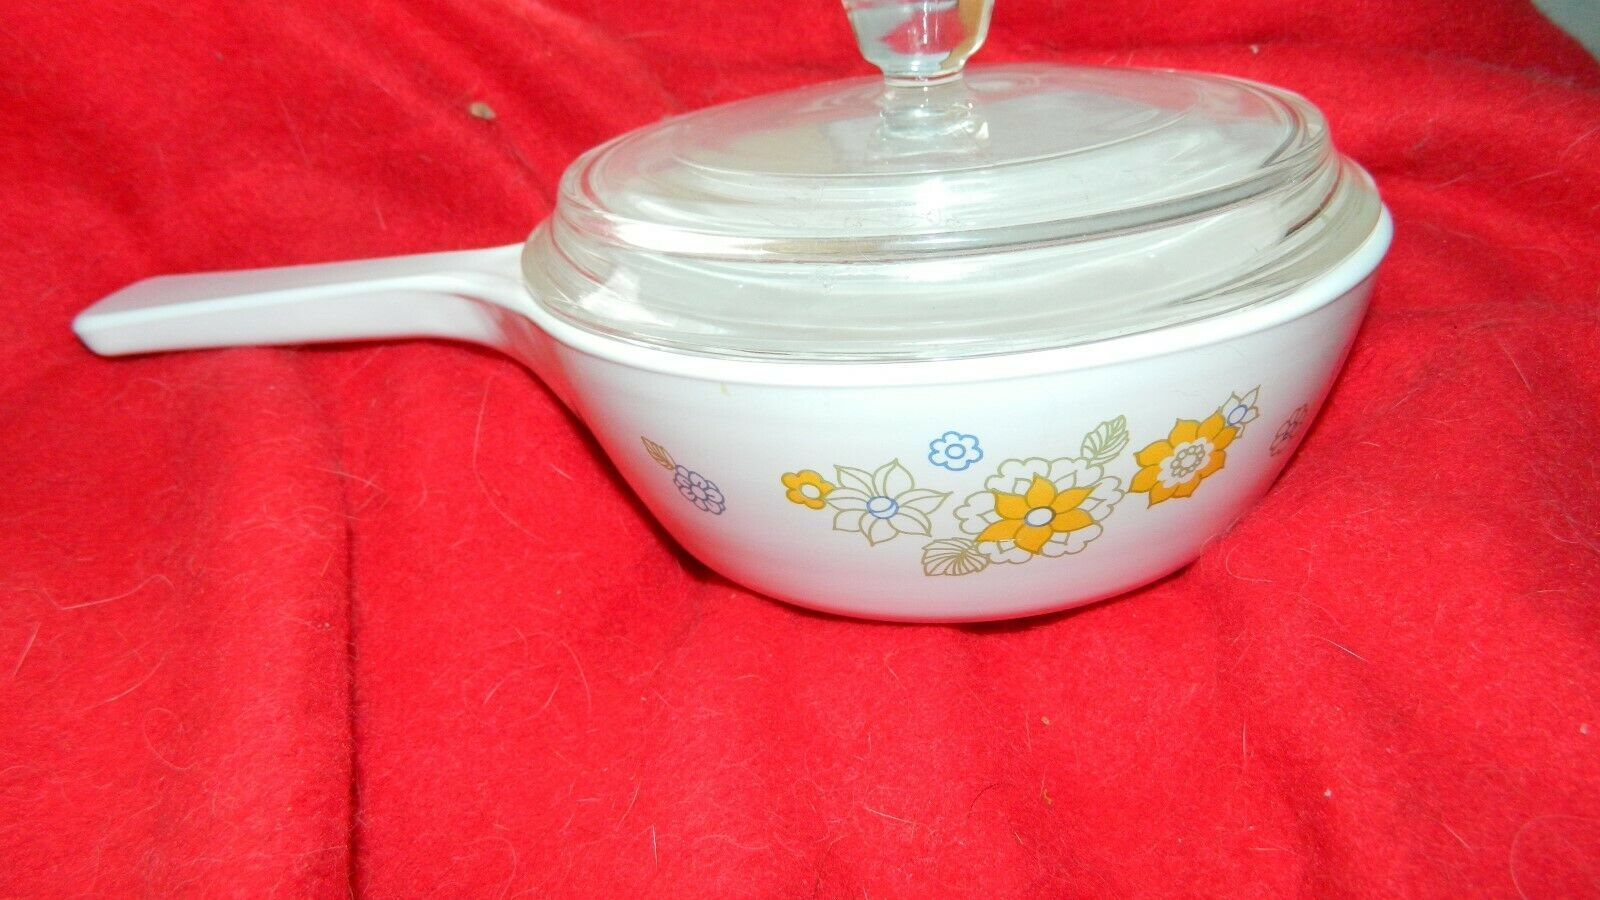 Primary image for CORNING WARE FLORAL BOUQUET 1 PINT SAUCEPAN WITH LID P-81-B FREE USA SHIPPING